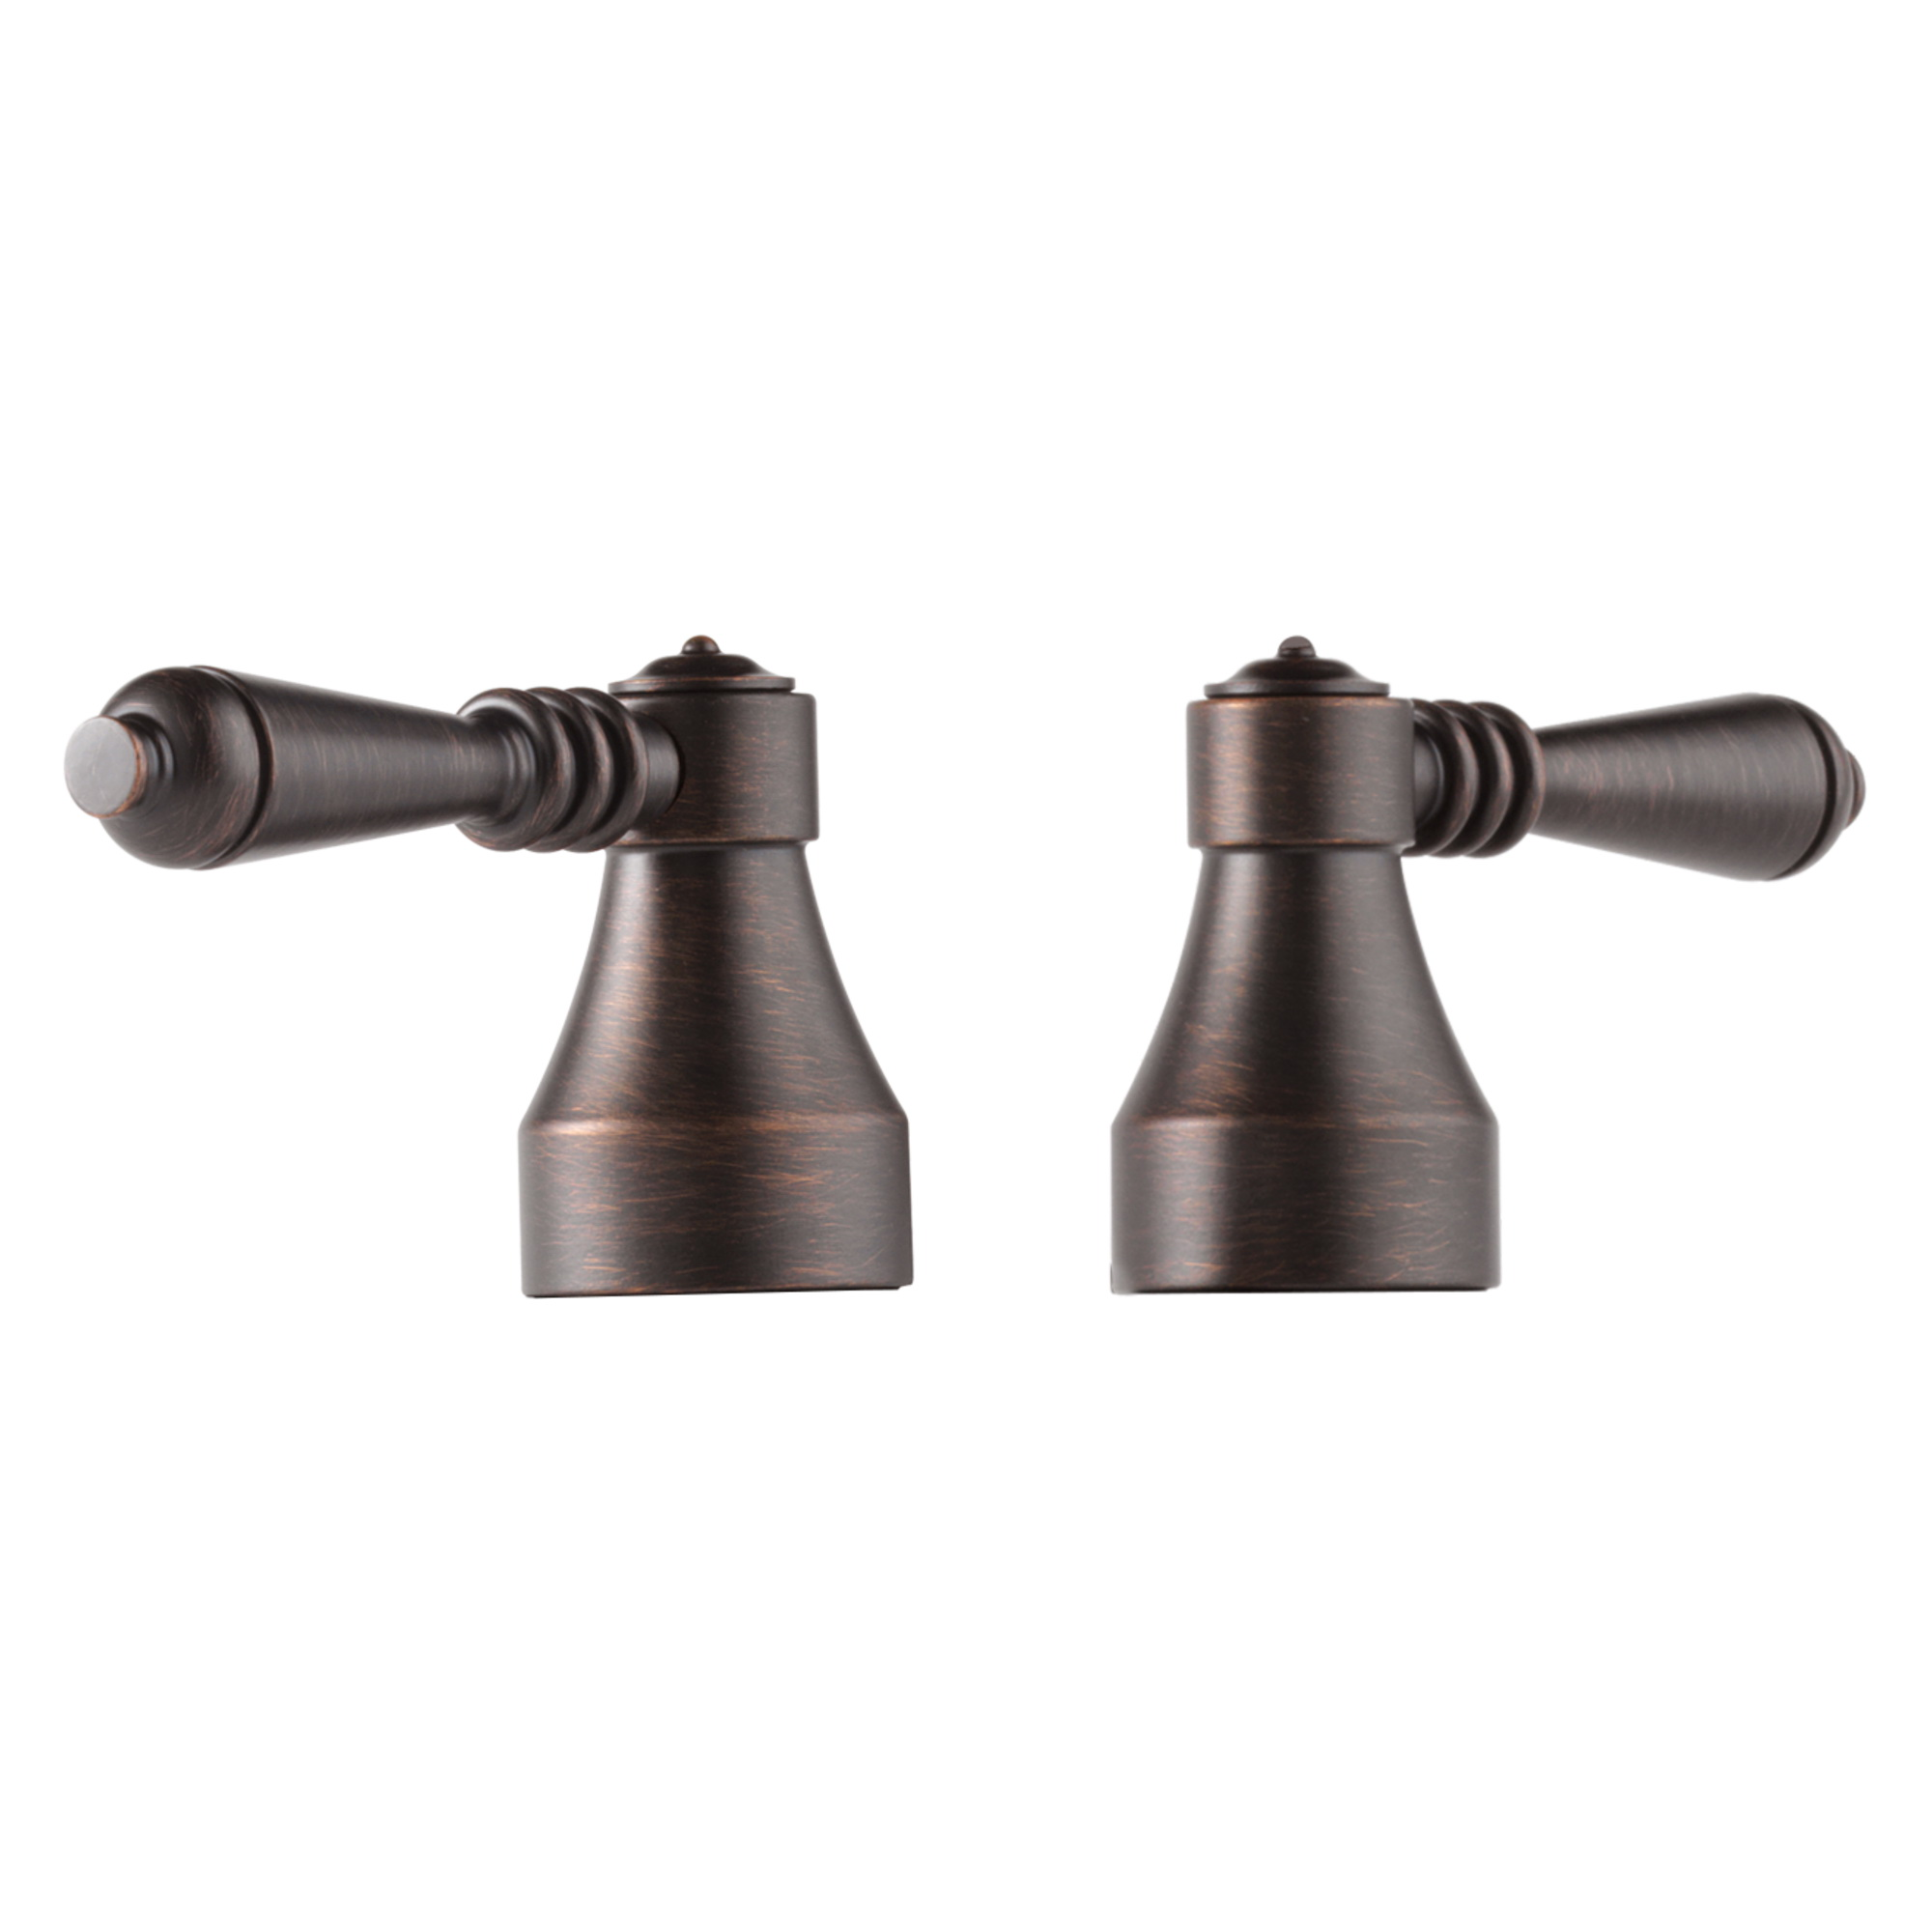 Brizo® RP52831RB Tresa® Single Lavatory Faucet Lever Handle Kit, Metal, Venetian Bronze, Domestic